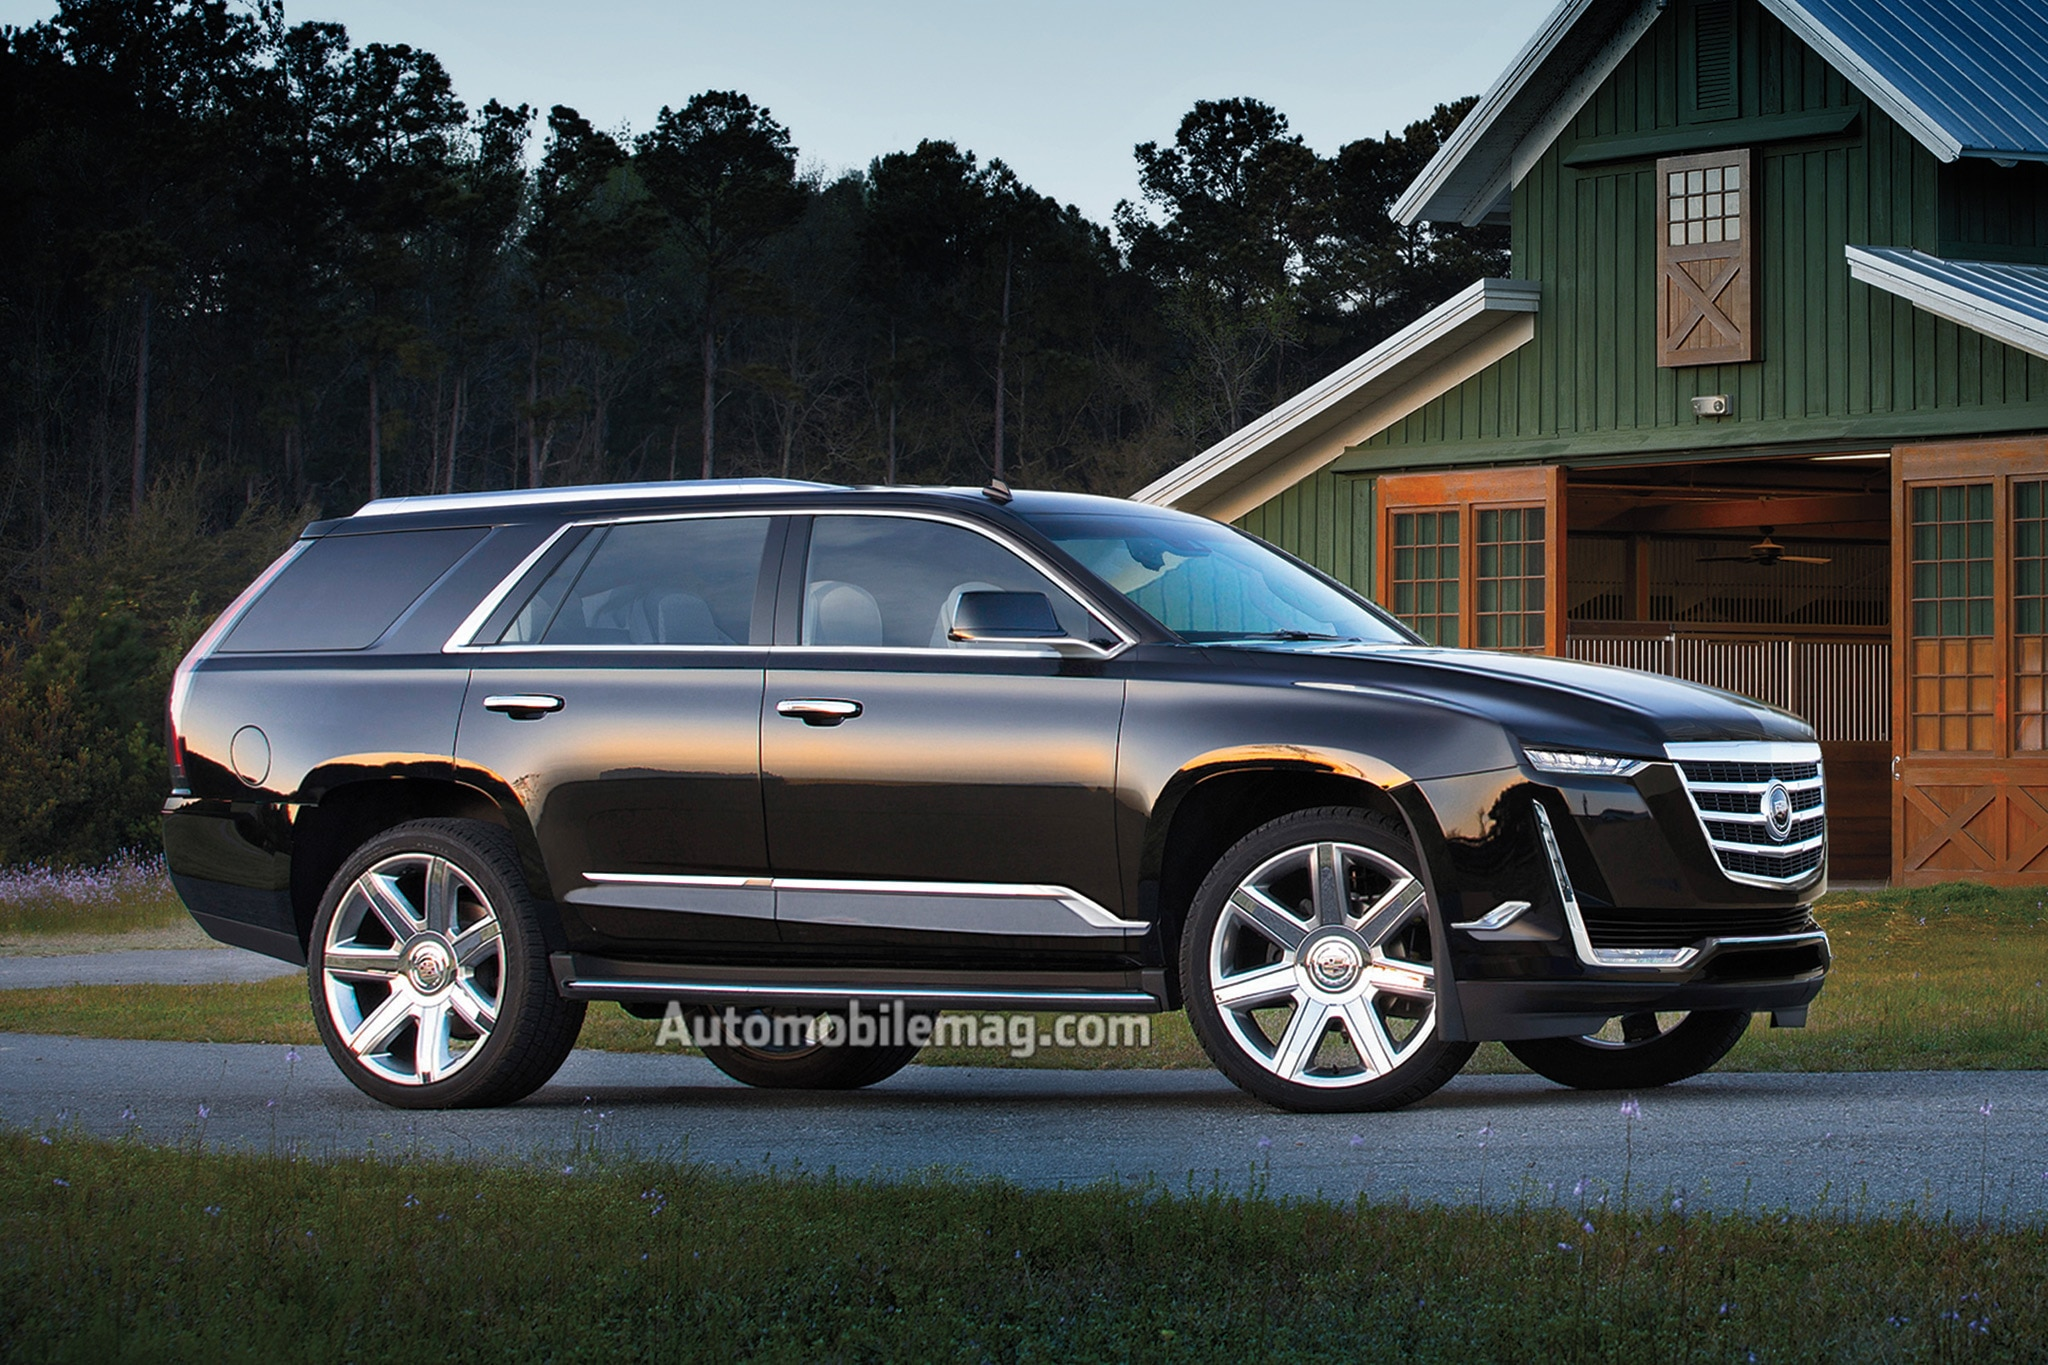 2020 Cadillac Escalade and Escalade ESV: What to Expect ...